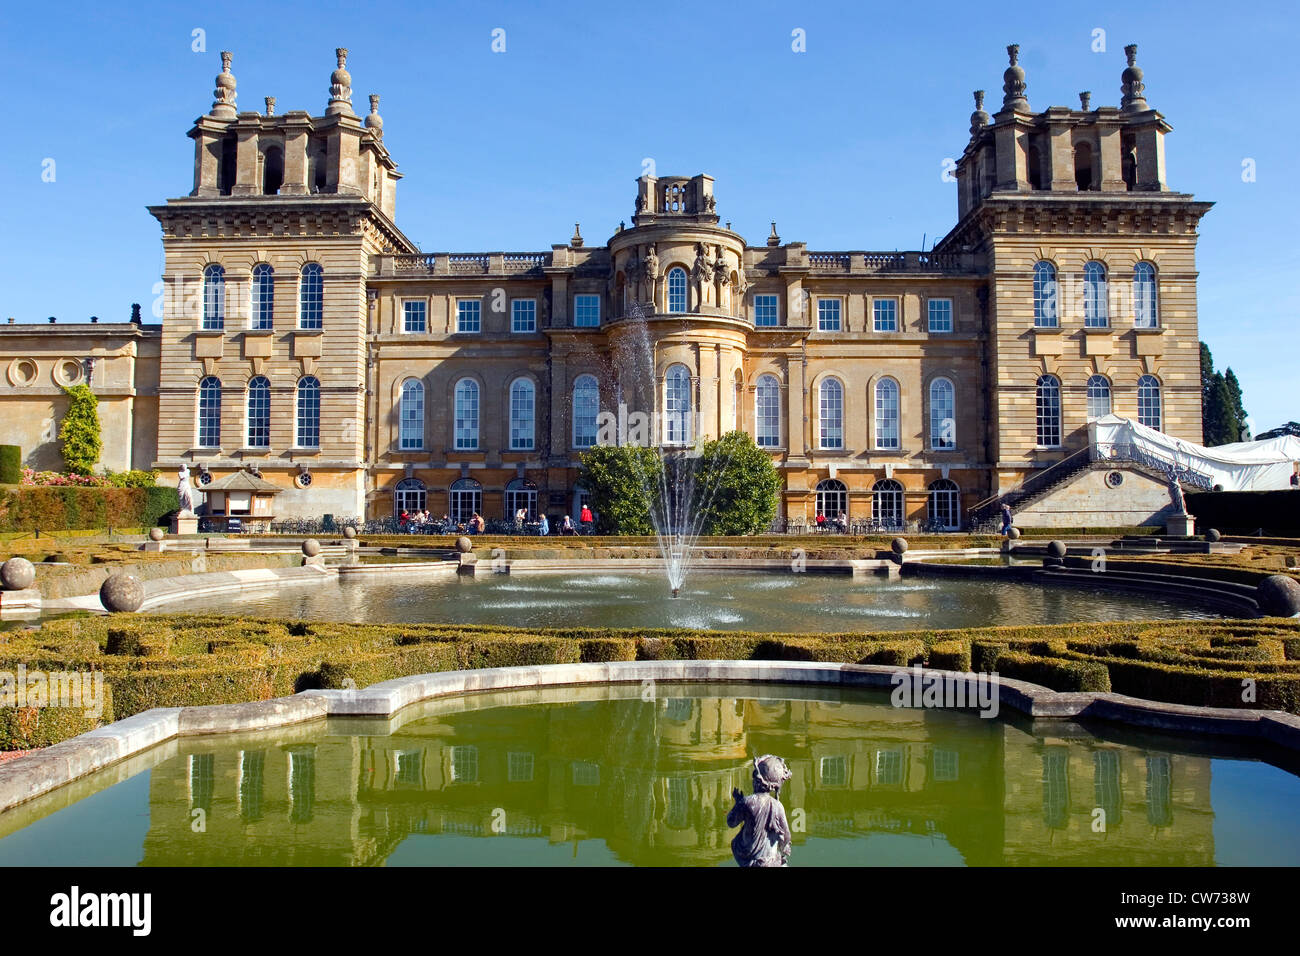 Blenheim Palace with lakes and fountain in the foreground, United Kingdom, England - Stock Image